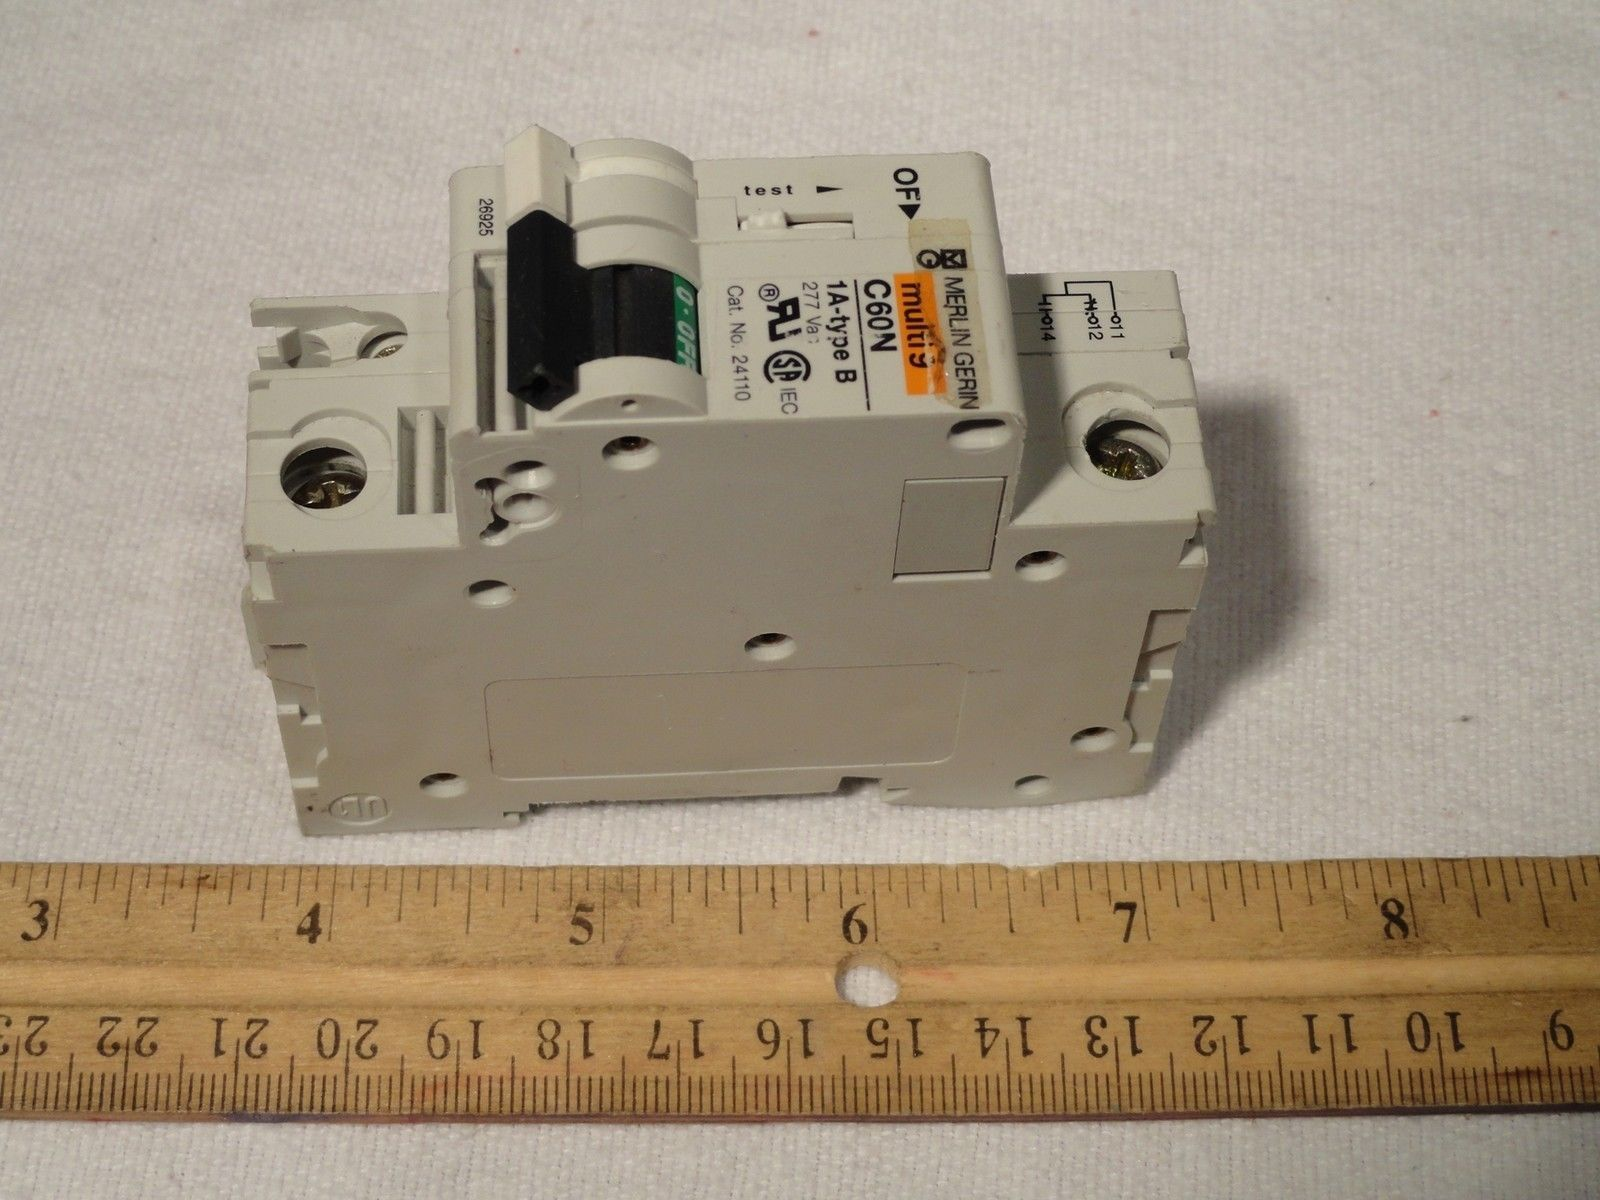 Merlin Gerin 24110 Multi 9 C60n Auxiliary And 50 Similar Items Details About Siemens 5sx21 C5 230 400v 5 Amp Circuit Breaker Voltage Rating 277v 1a